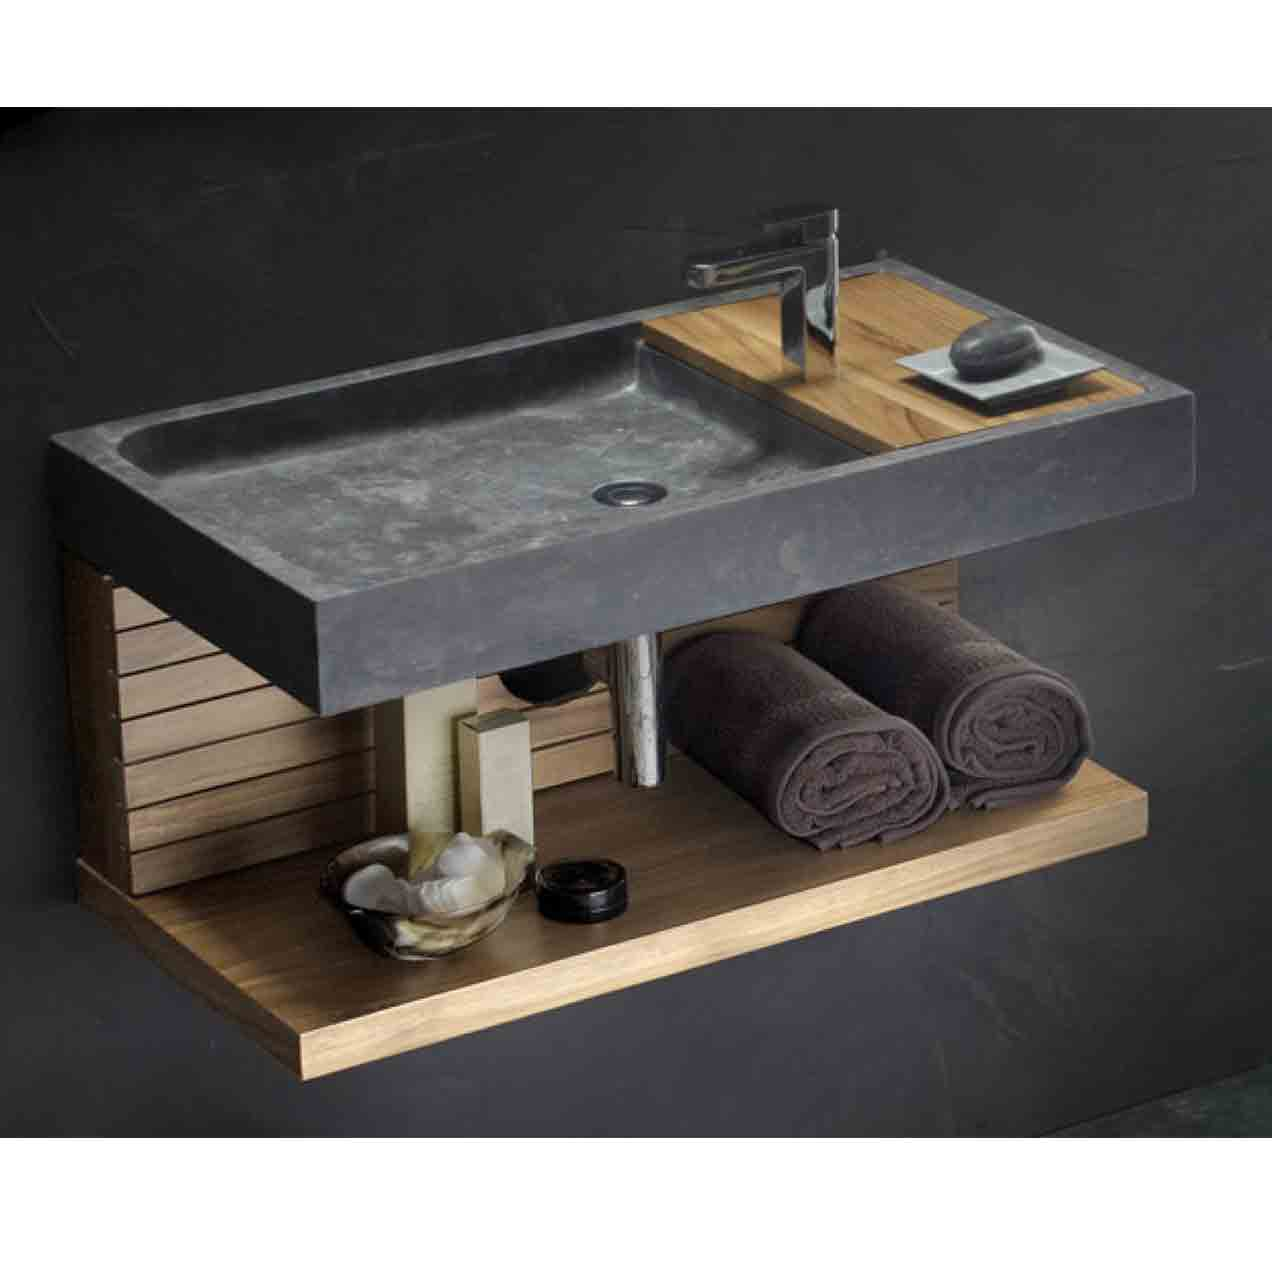 lavabo et meuble salle de bain verona bathco bathco 00348. Black Bedroom Furniture Sets. Home Design Ideas